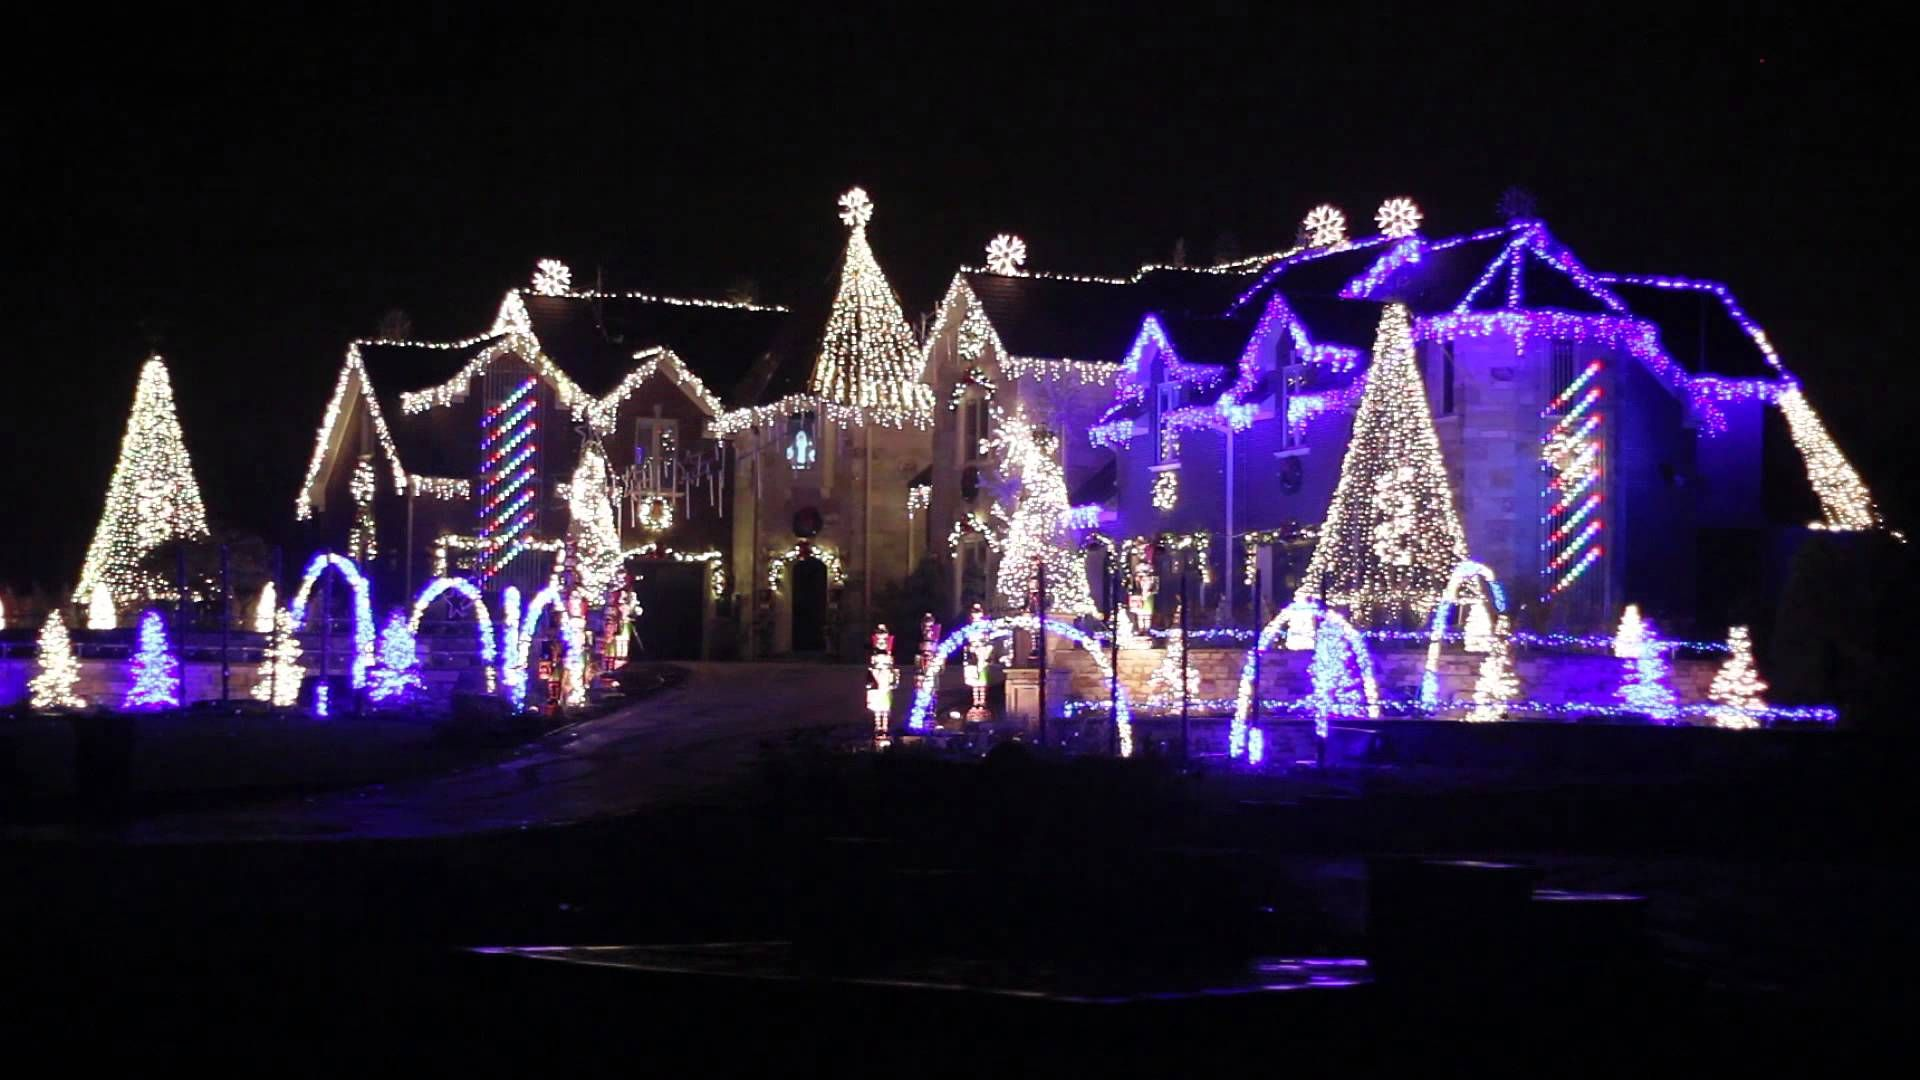 The Best Ever Larsen S Light Show 2013 God Bless The Usa Thanks To All In Our Outdoor Christmas Lights Christmas House Lights Purple Christmas Lights